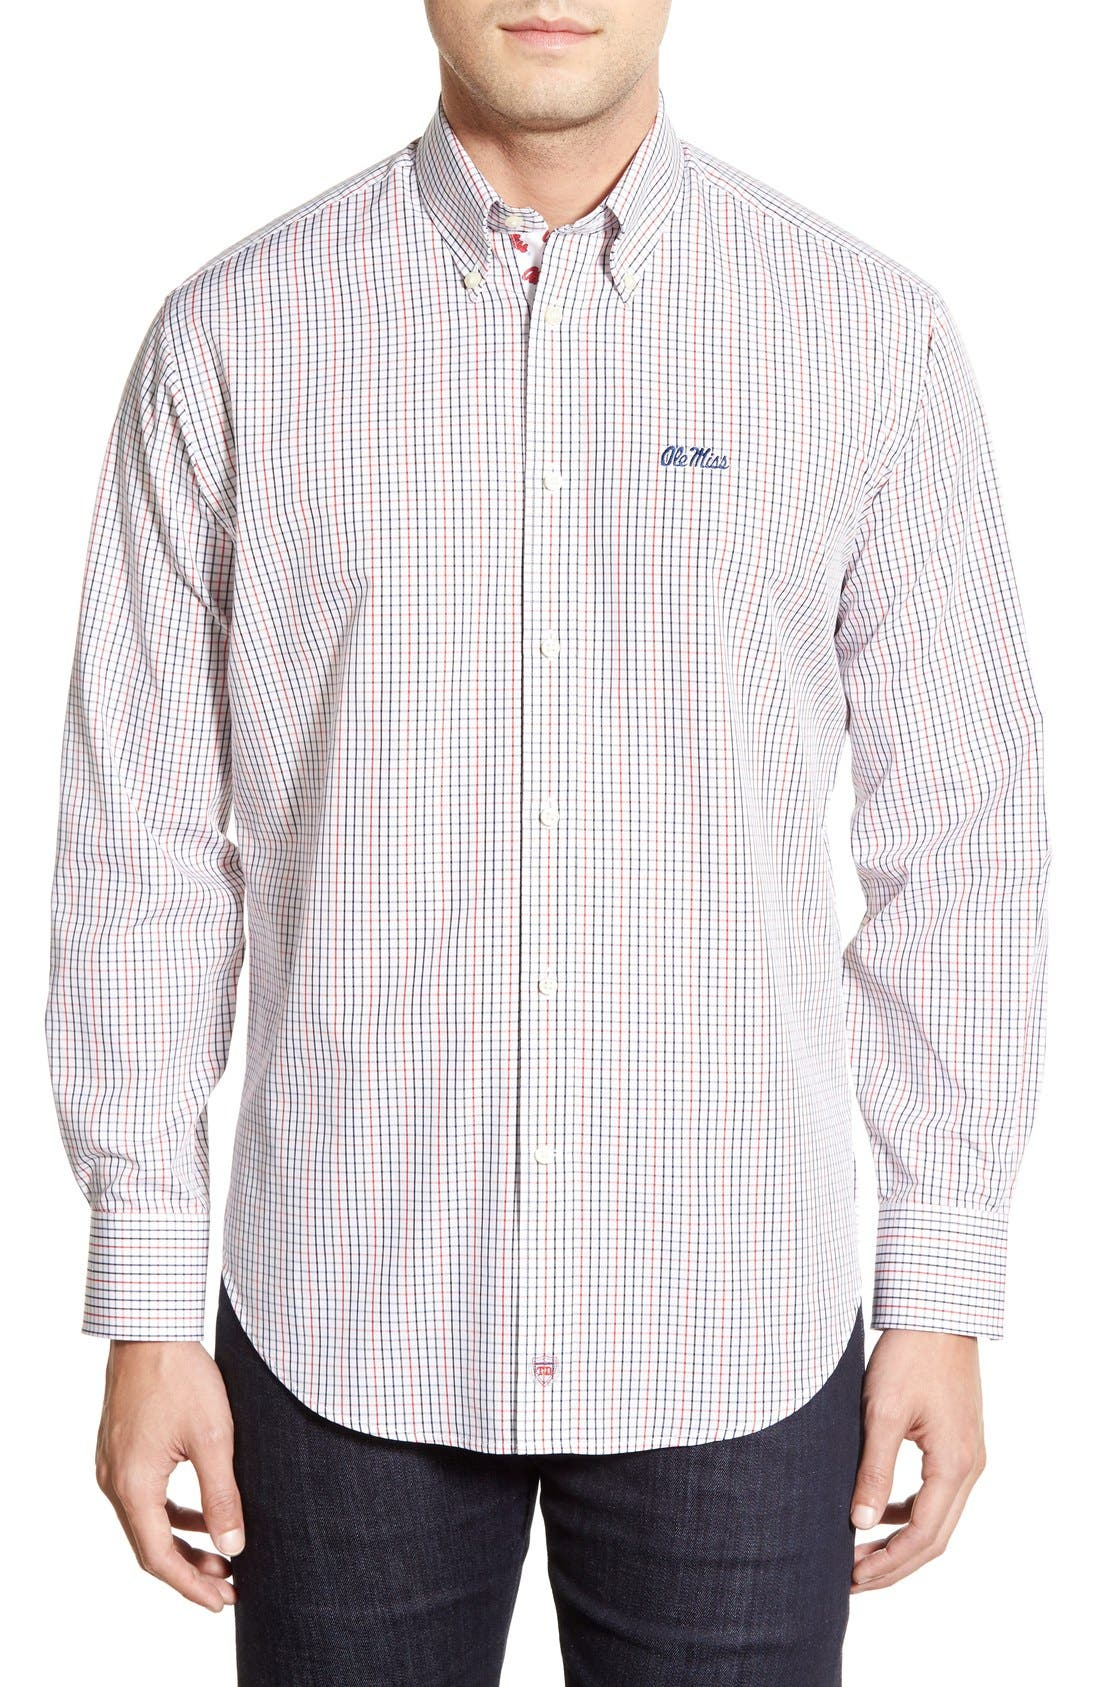 'Ole Miss Rebels' Regular Fit Long Sleeve Tattersall Sport Shirt,                             Main thumbnail 1, color,                             600